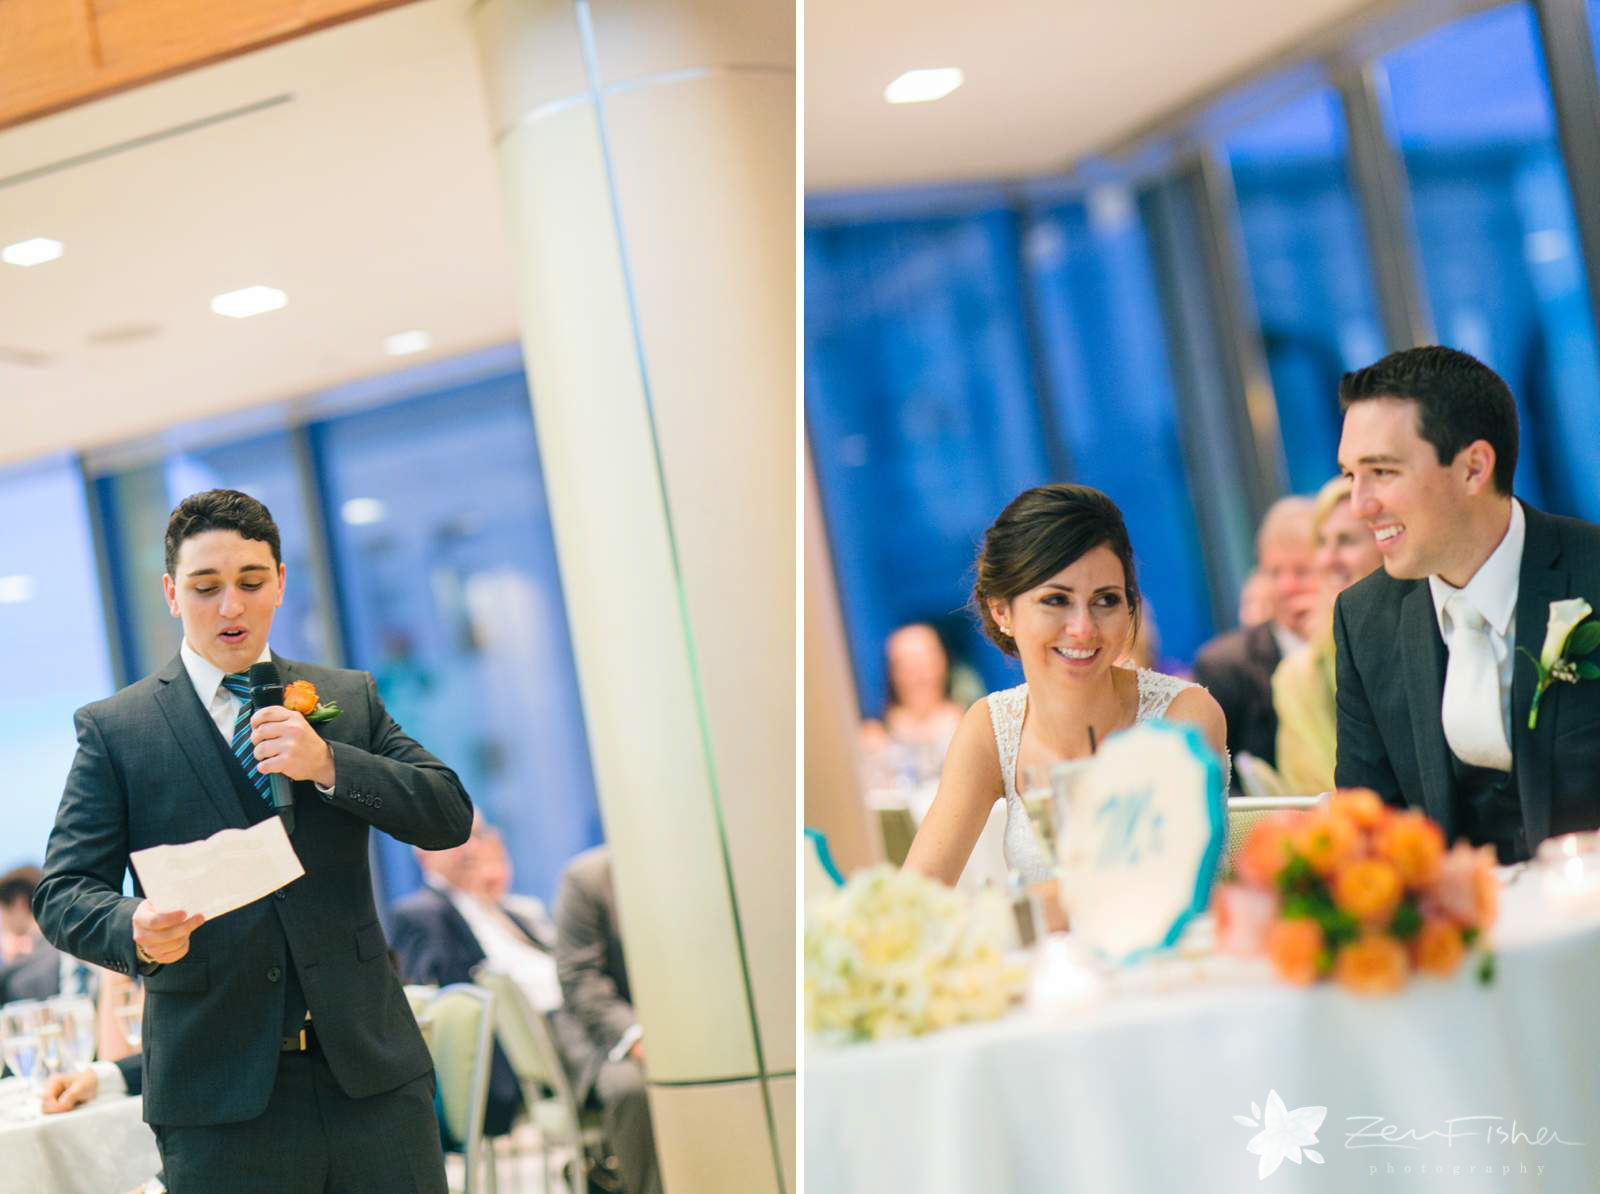 Best man making a toast at wedding reception, bride and groom laughing and reacting to speeches